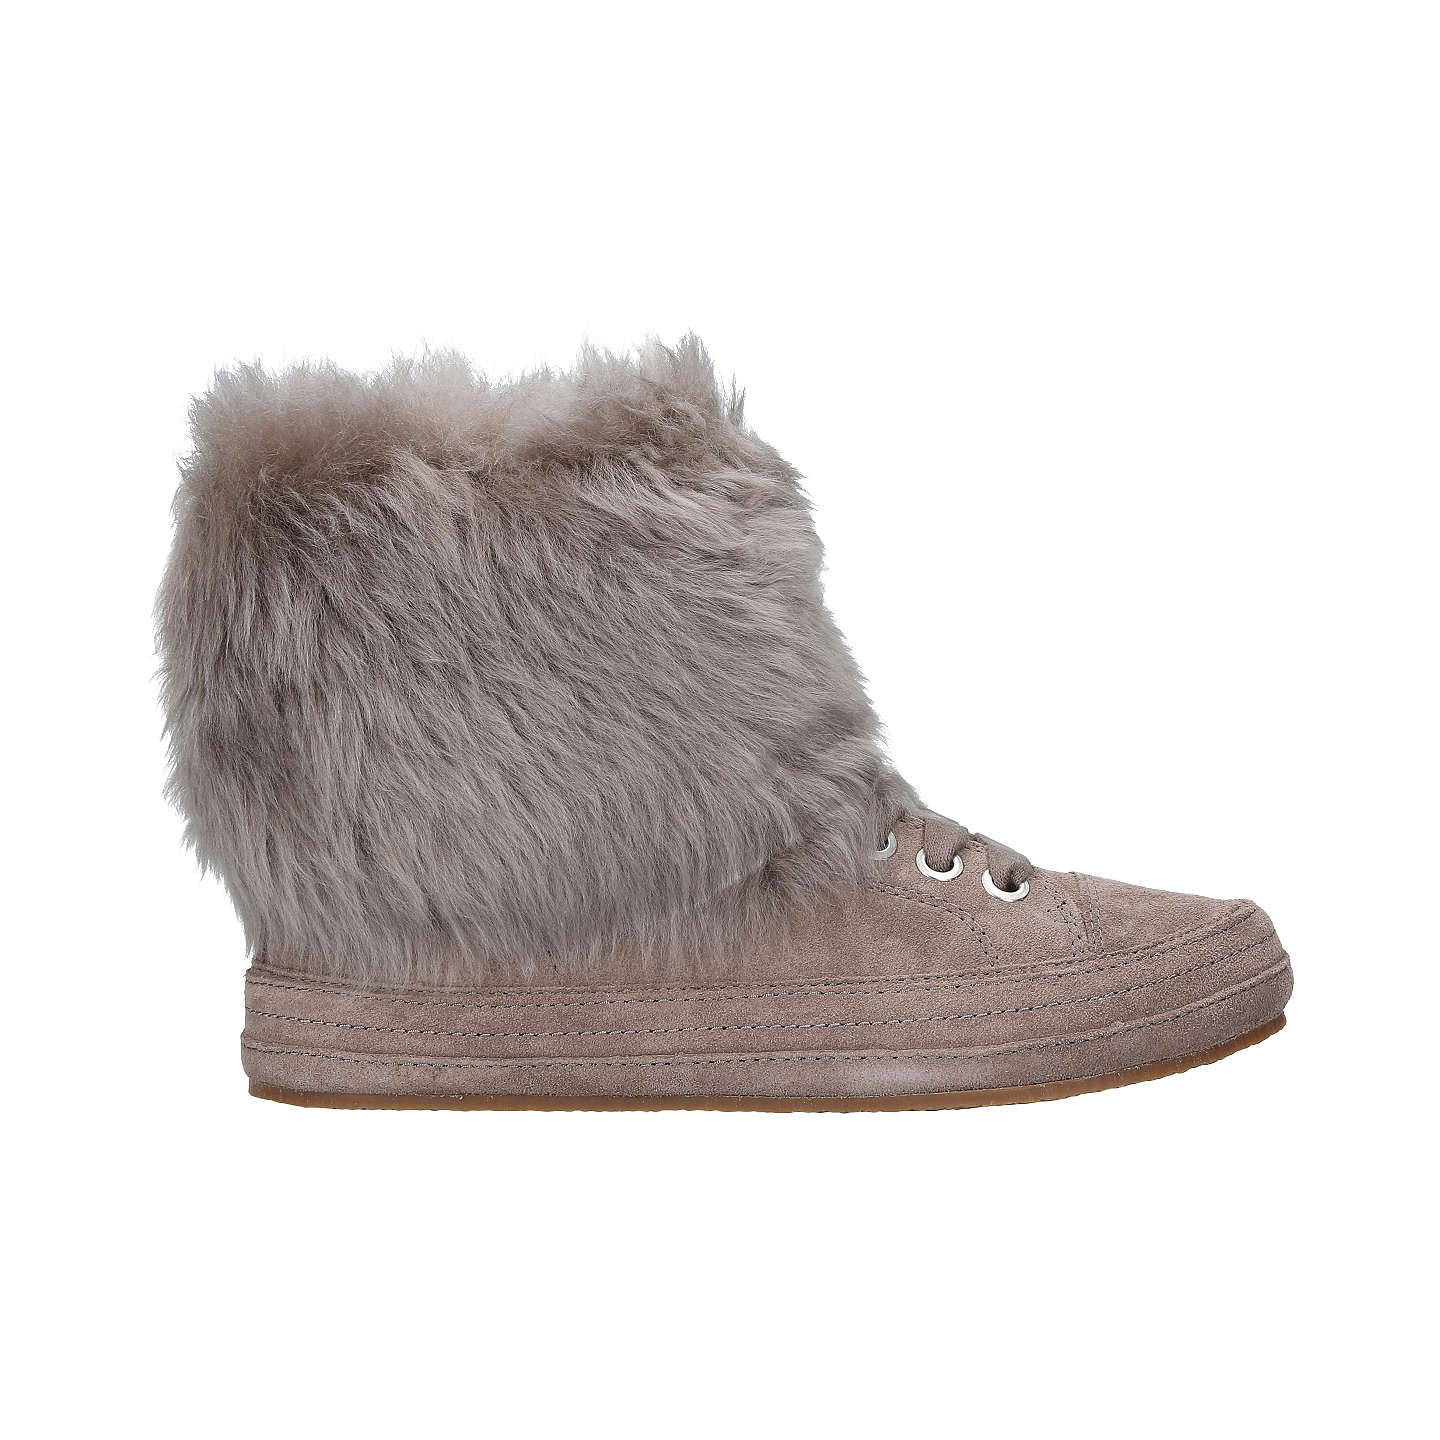 BuyUGG Antoine Faux Fur Cuff Ankle Boots, Dark Grey Suede, 4 Online at johnlewis.com